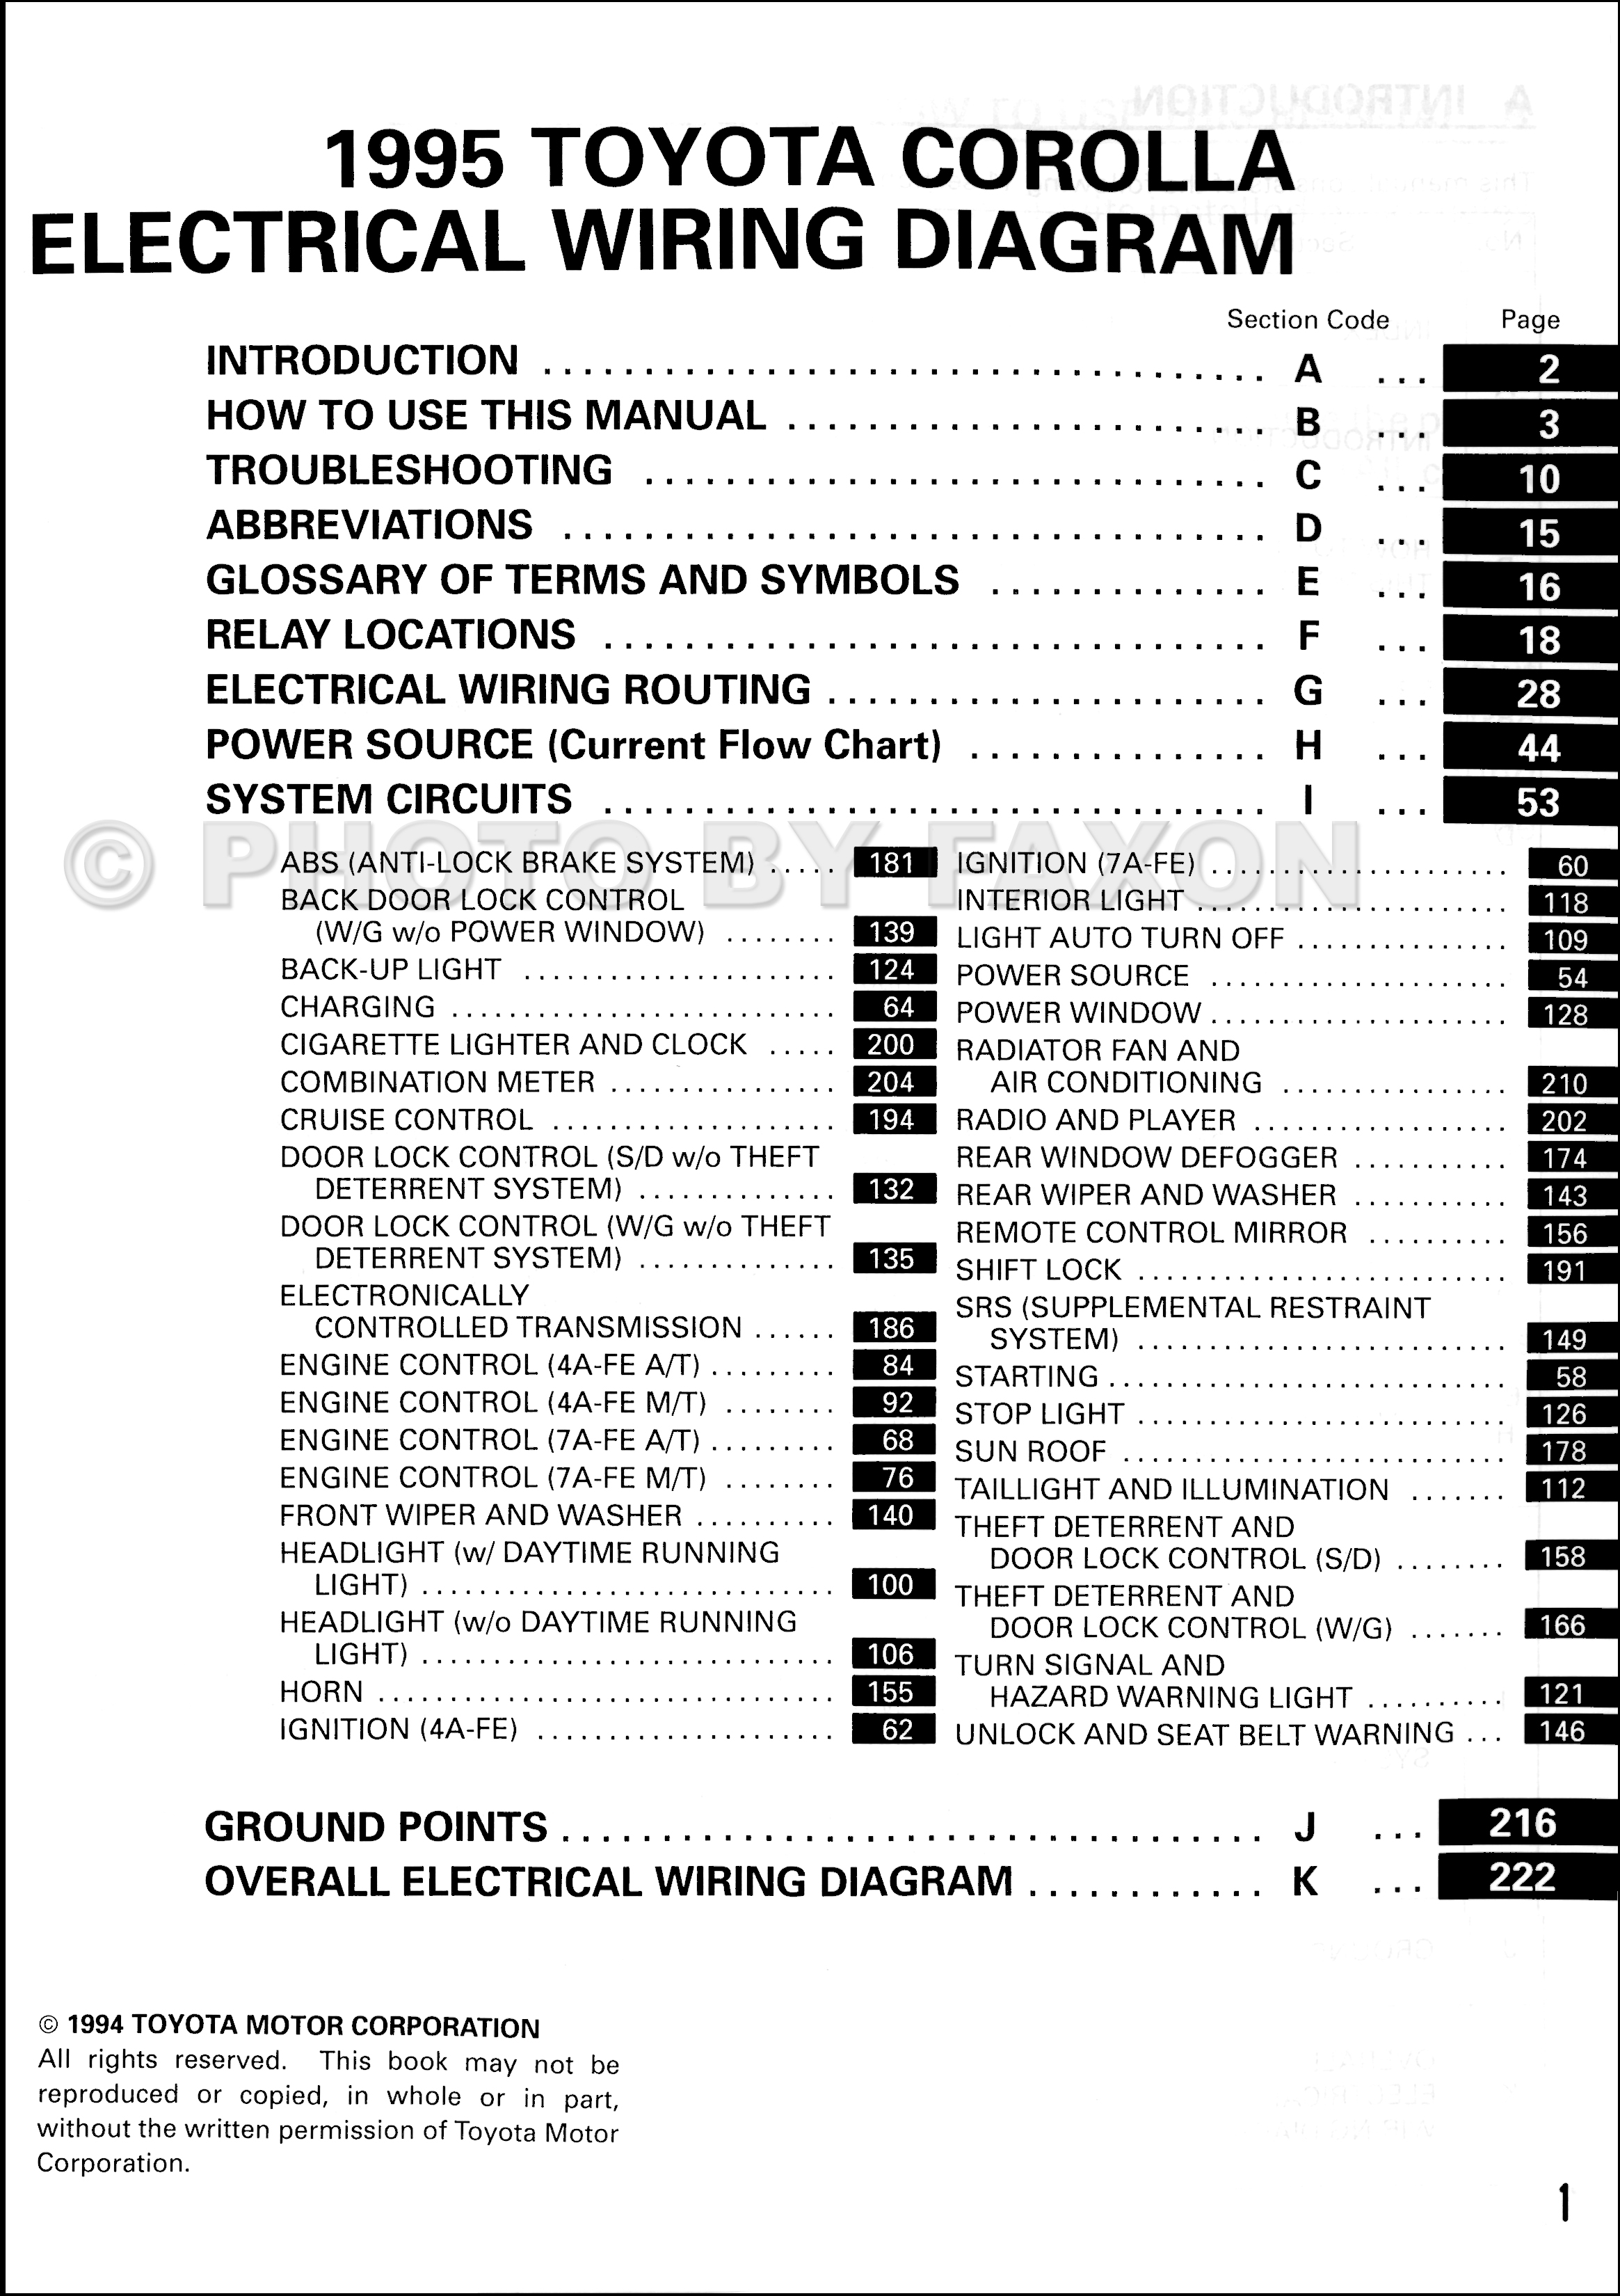 1995ToyotaCorollaOWD TOC 1995 toyota corolla wiring diagram manual original 1995 toyota corolla wiring diagram at readyjetset.co